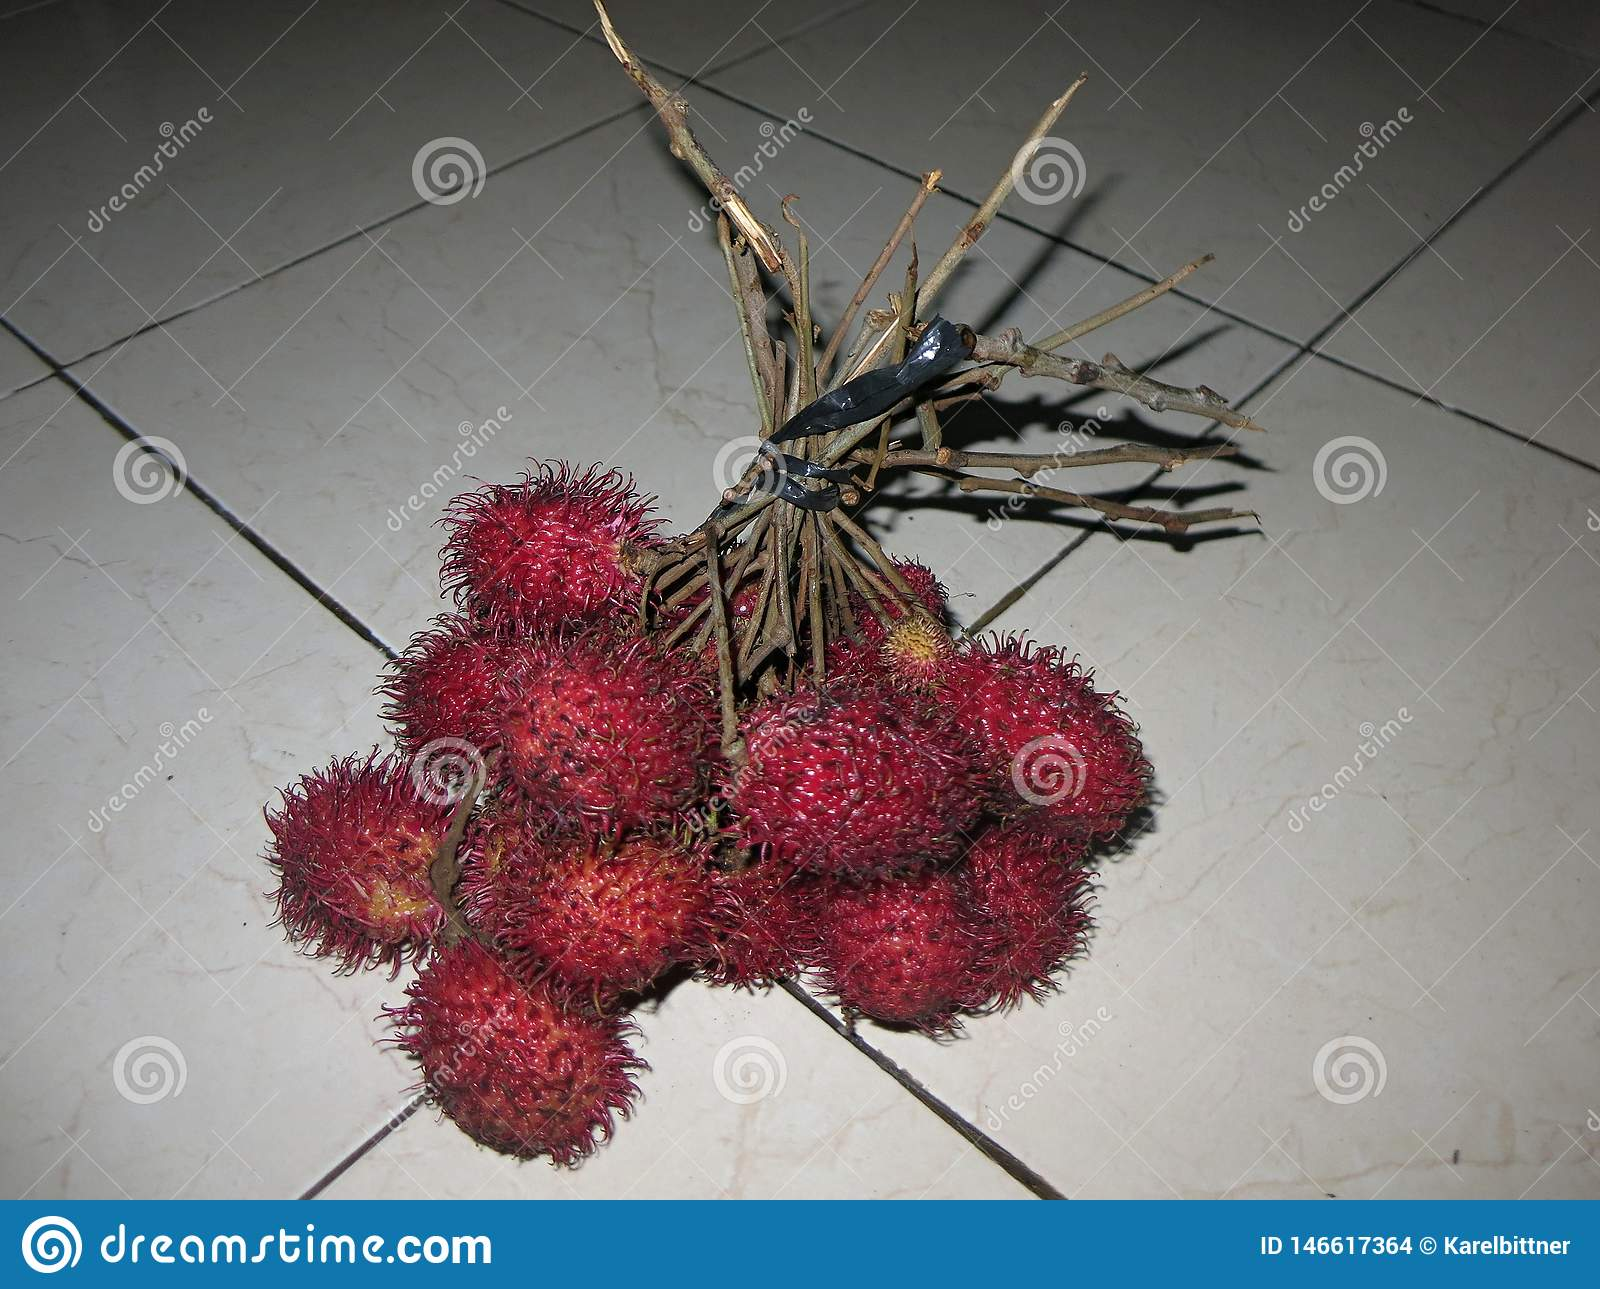 Tropical fruit sweet and fresh taste, widely spread and grown in Asia. Source of vitamins and health.